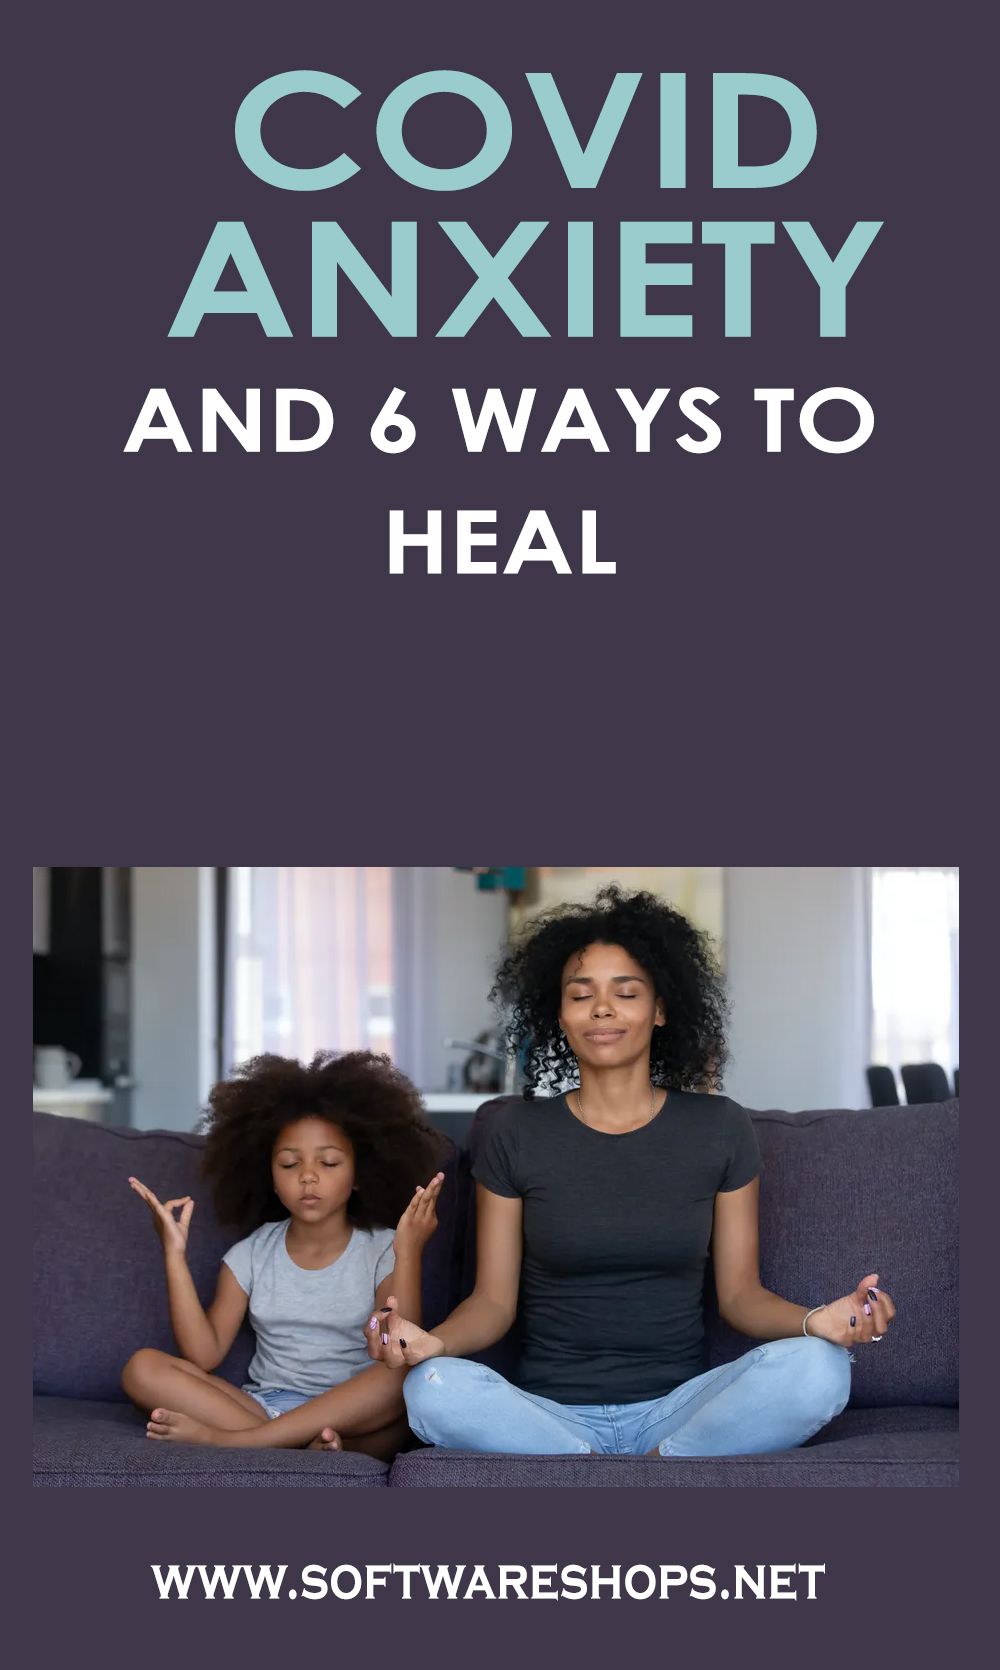 Covid Anxiety and 6 Ways to Heal